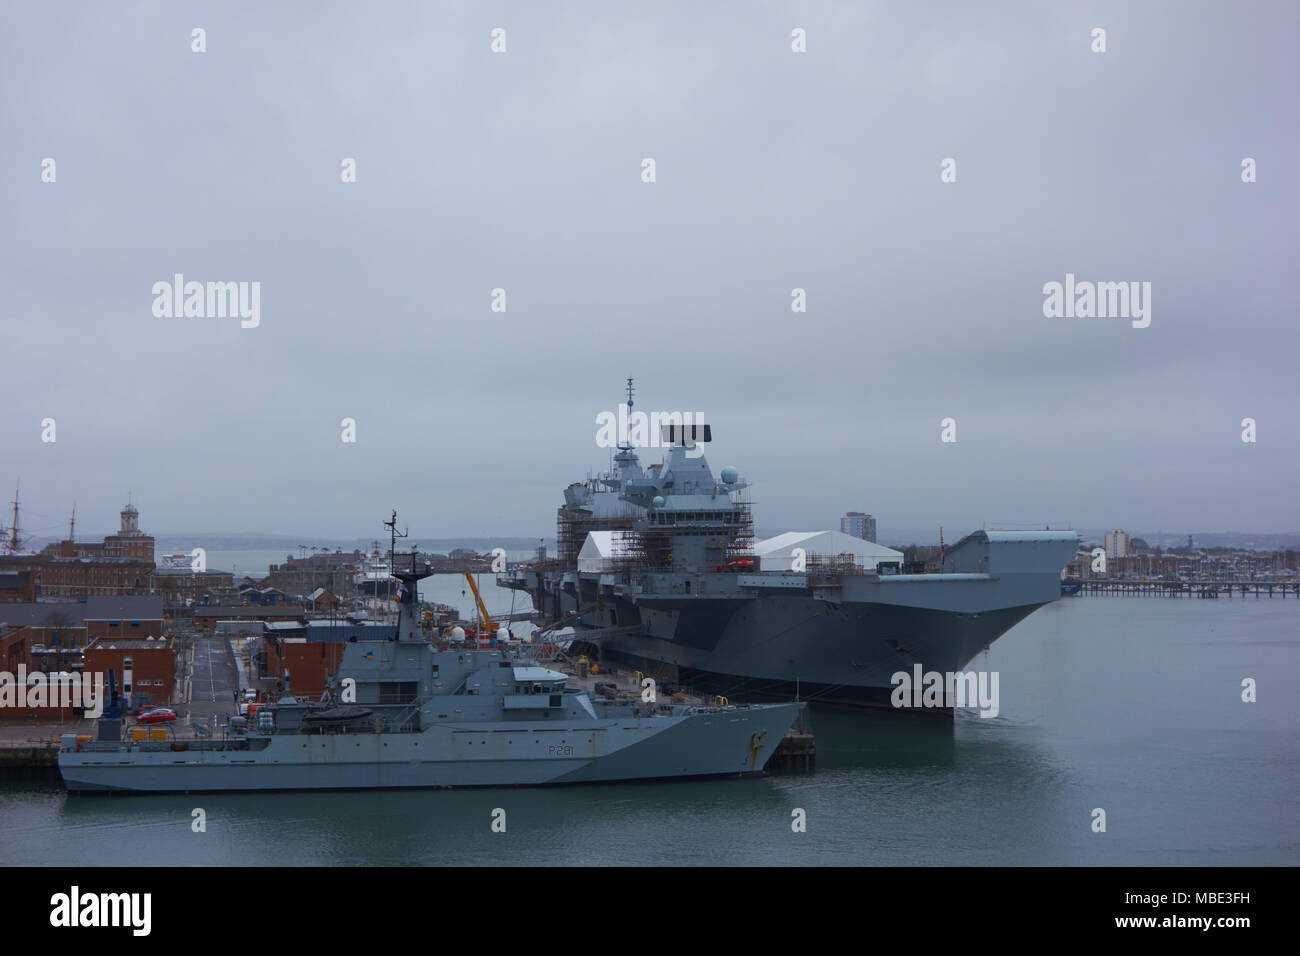 Starboard bow view of Royal Navy HMS Queen Elizabeth under maintenance in Portsmouth, UK - Stock Image